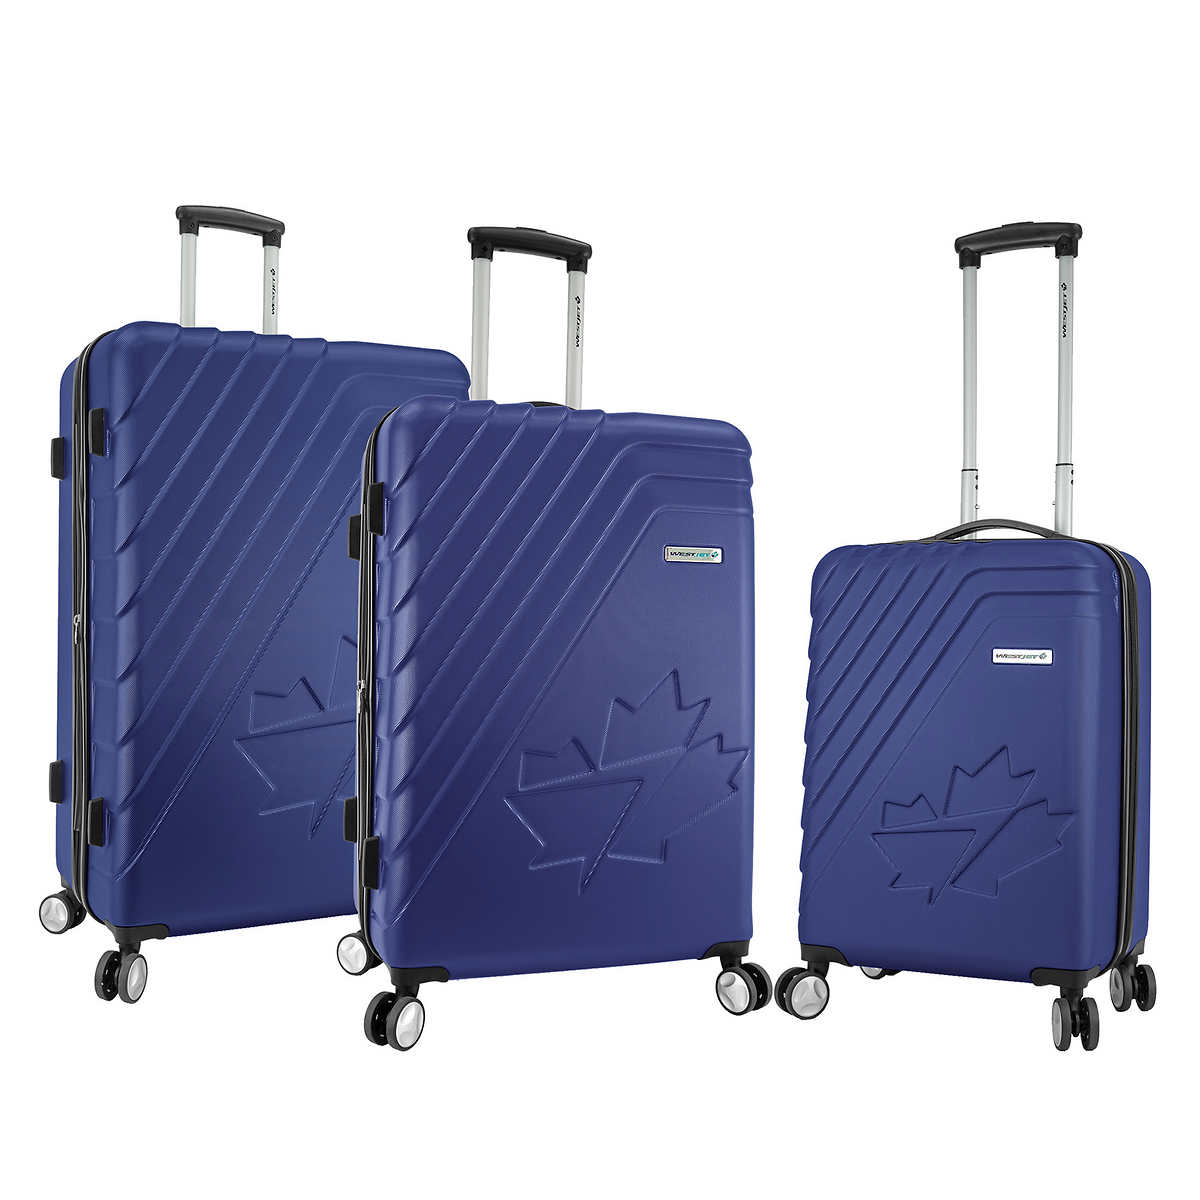 5eba29ba86d8 WestJet Saturn Collection 3-piece Hardside Luggage Set